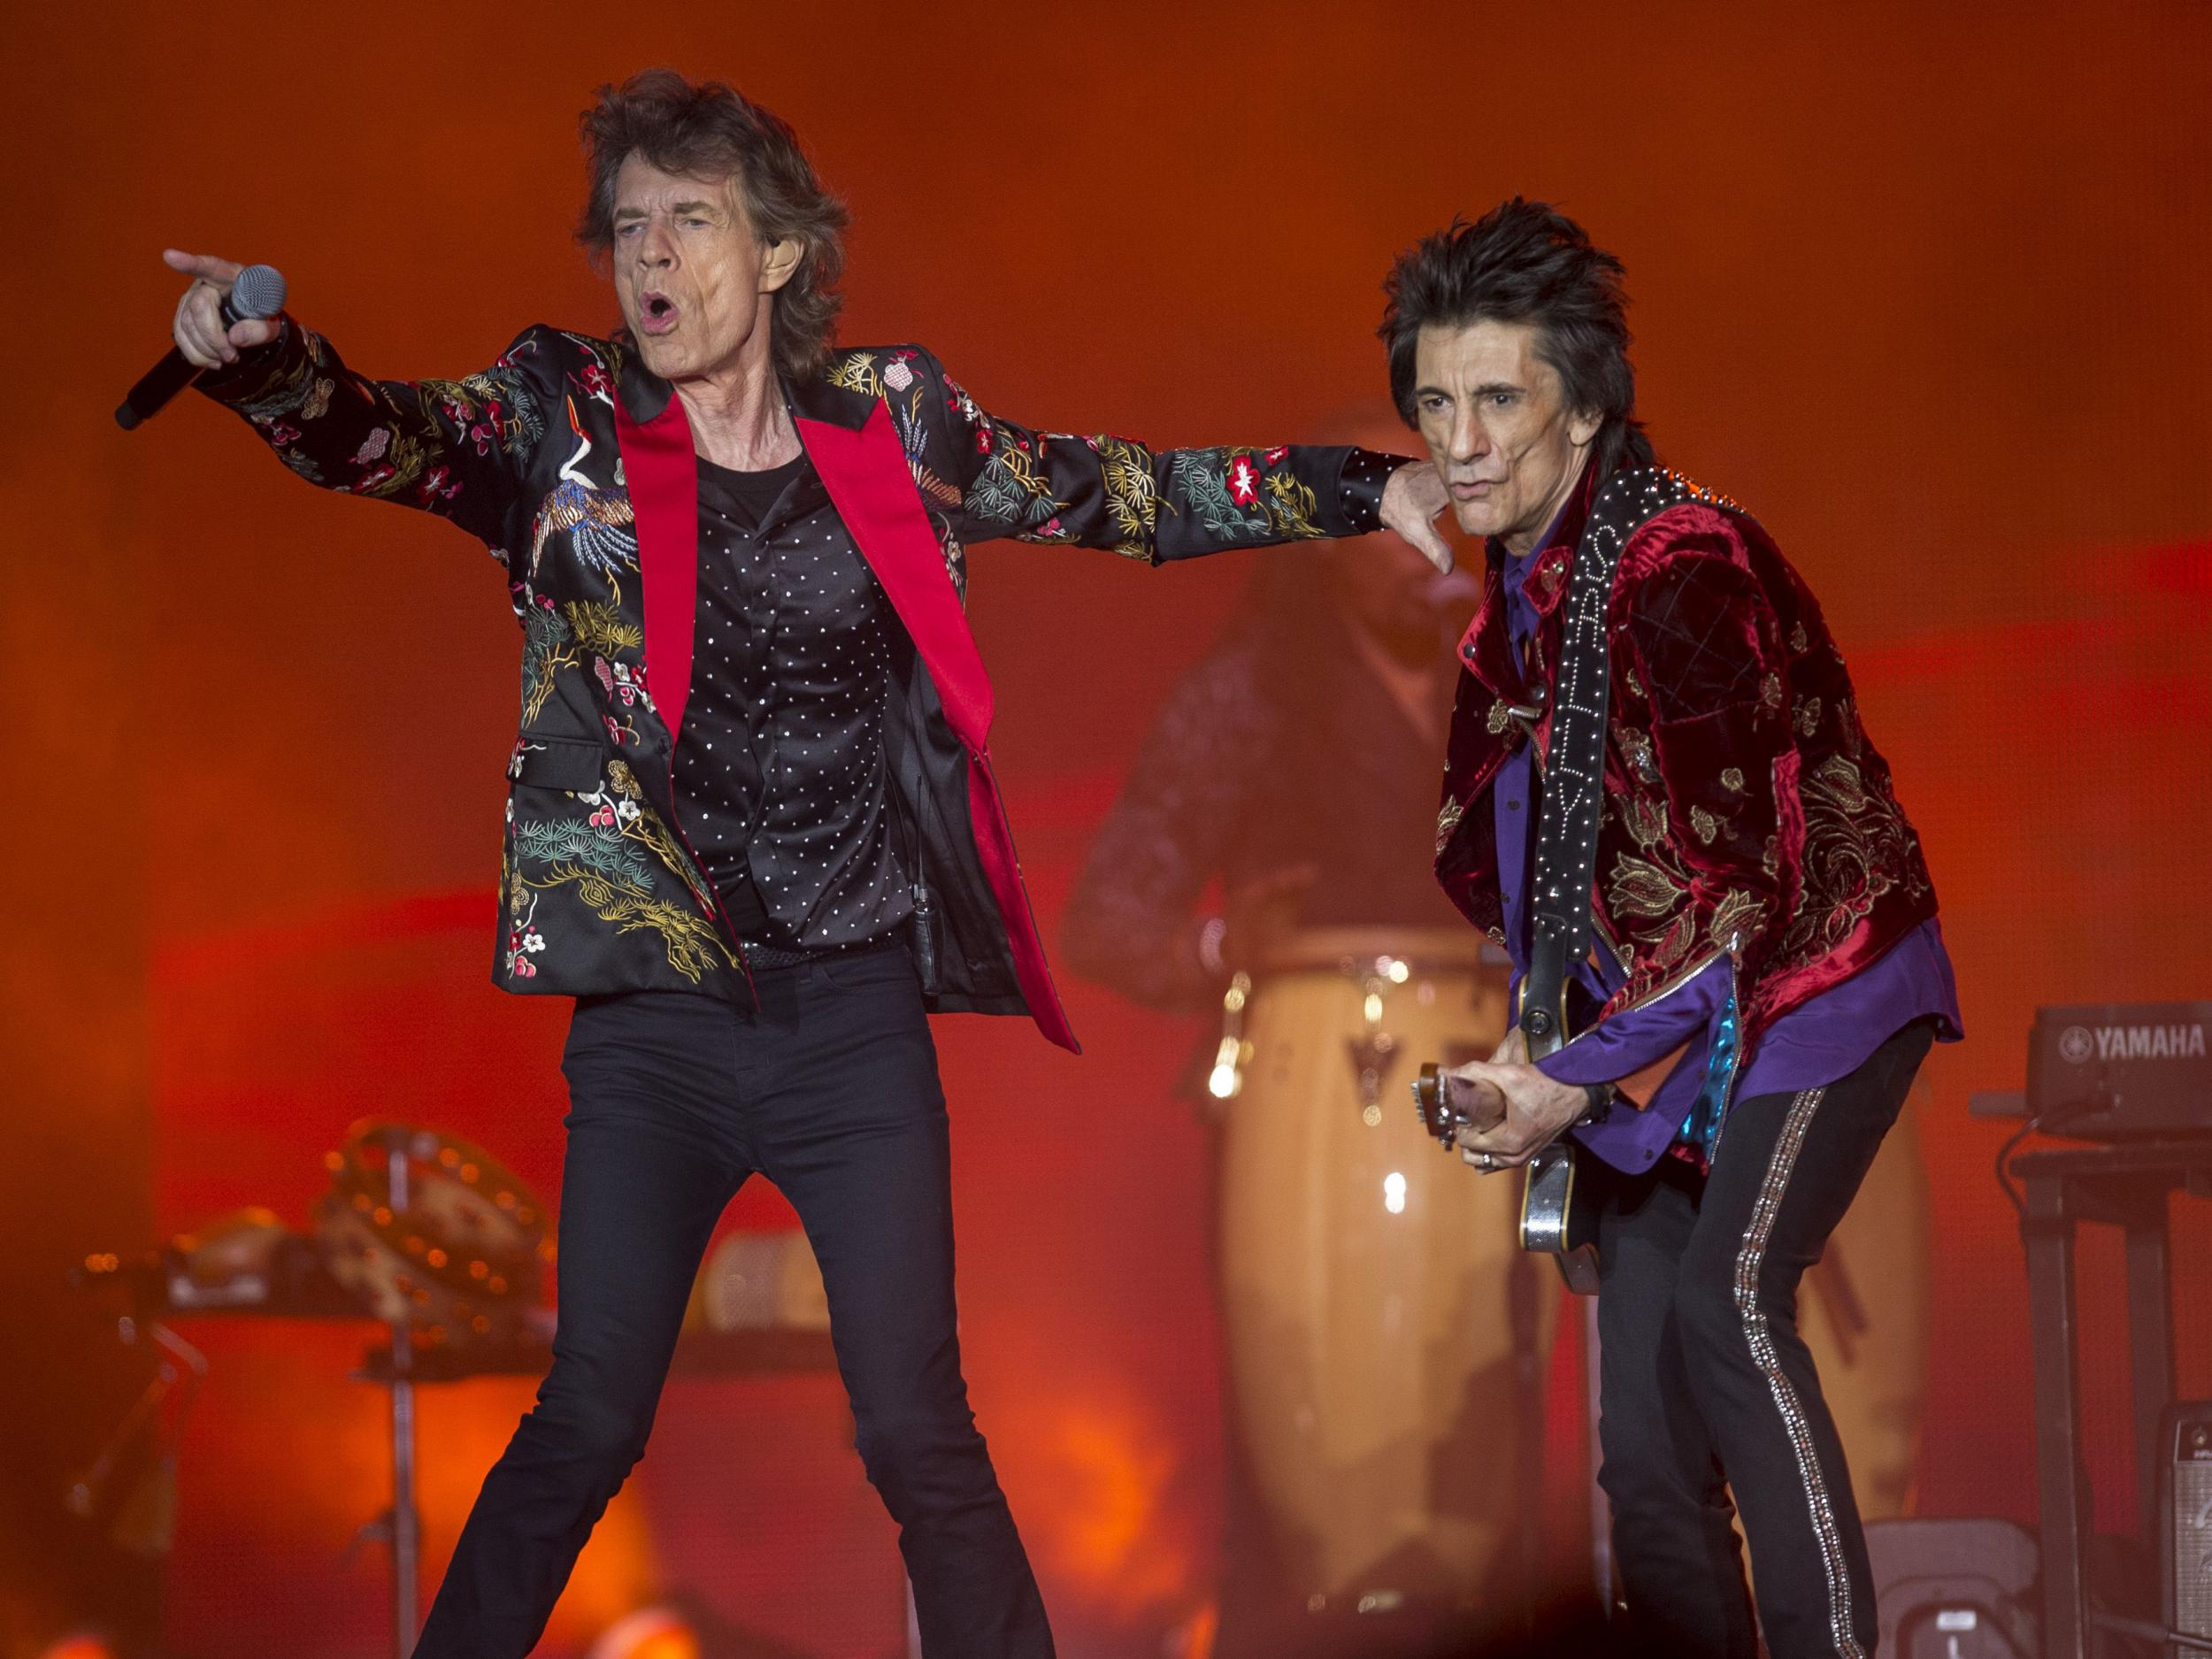 Rolling Stones tour 2018: Liam Gallagher, Florence + The ... Rolling Stones Tour 2018